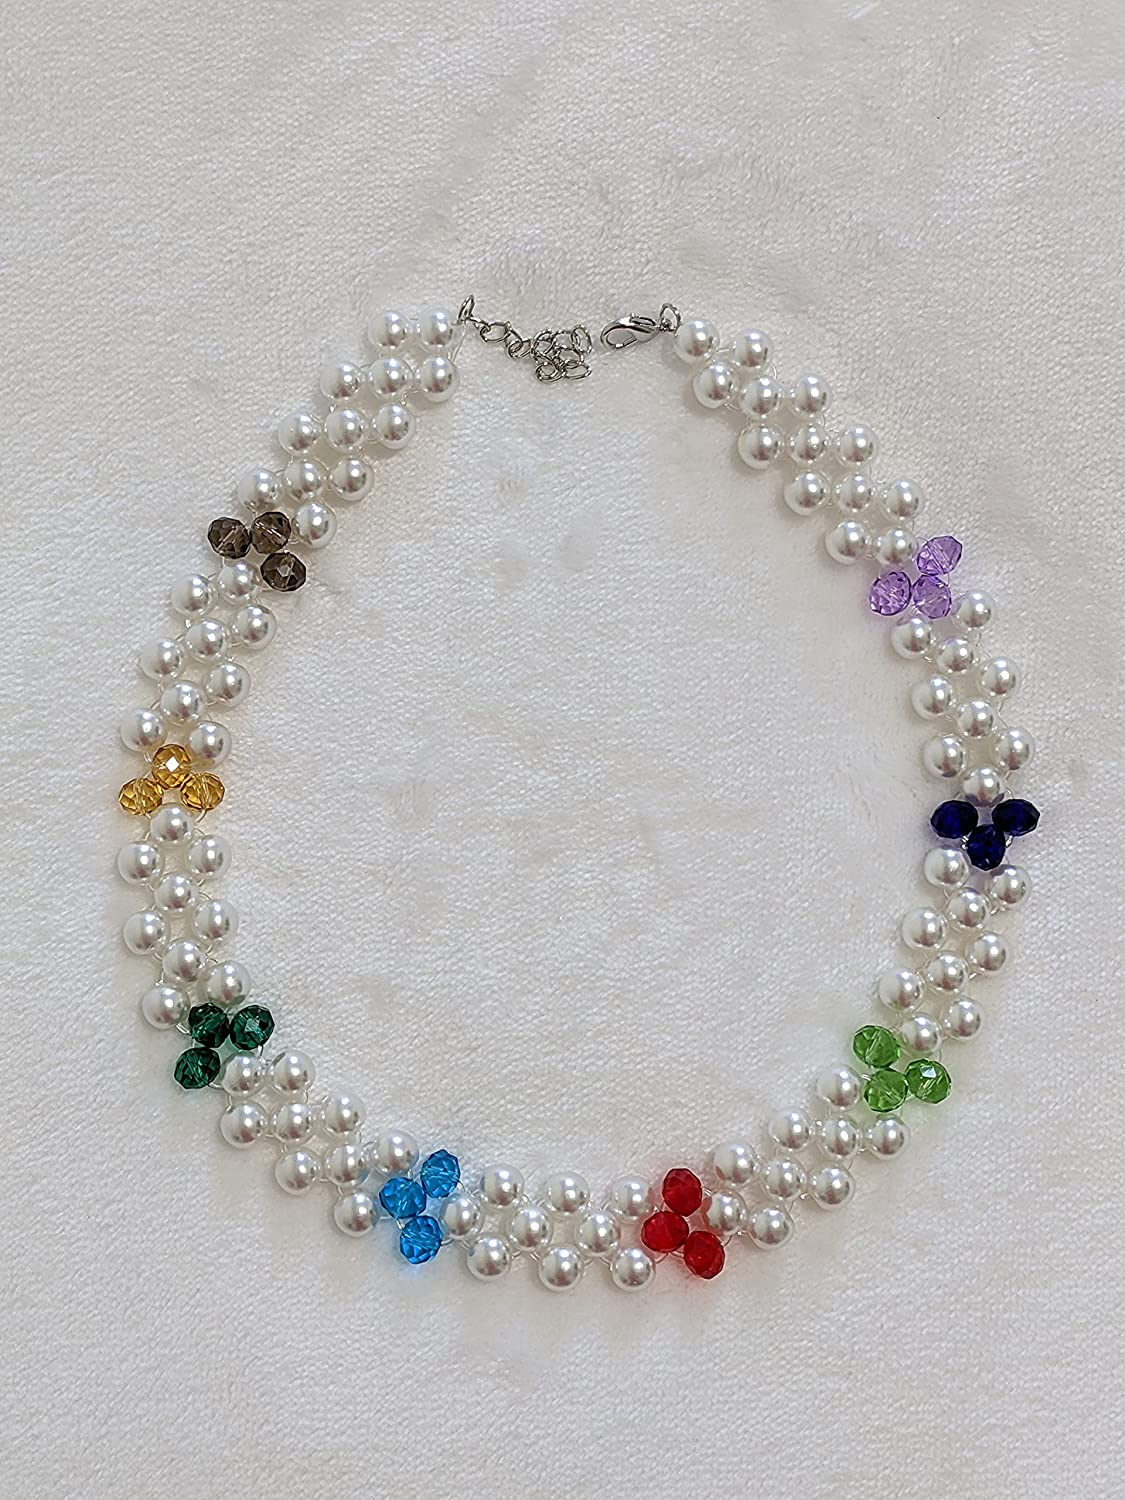 Cutelane Multicolored Max 75% OFF Faceted Crystal Beads Simul Glass Accented Selling and selling